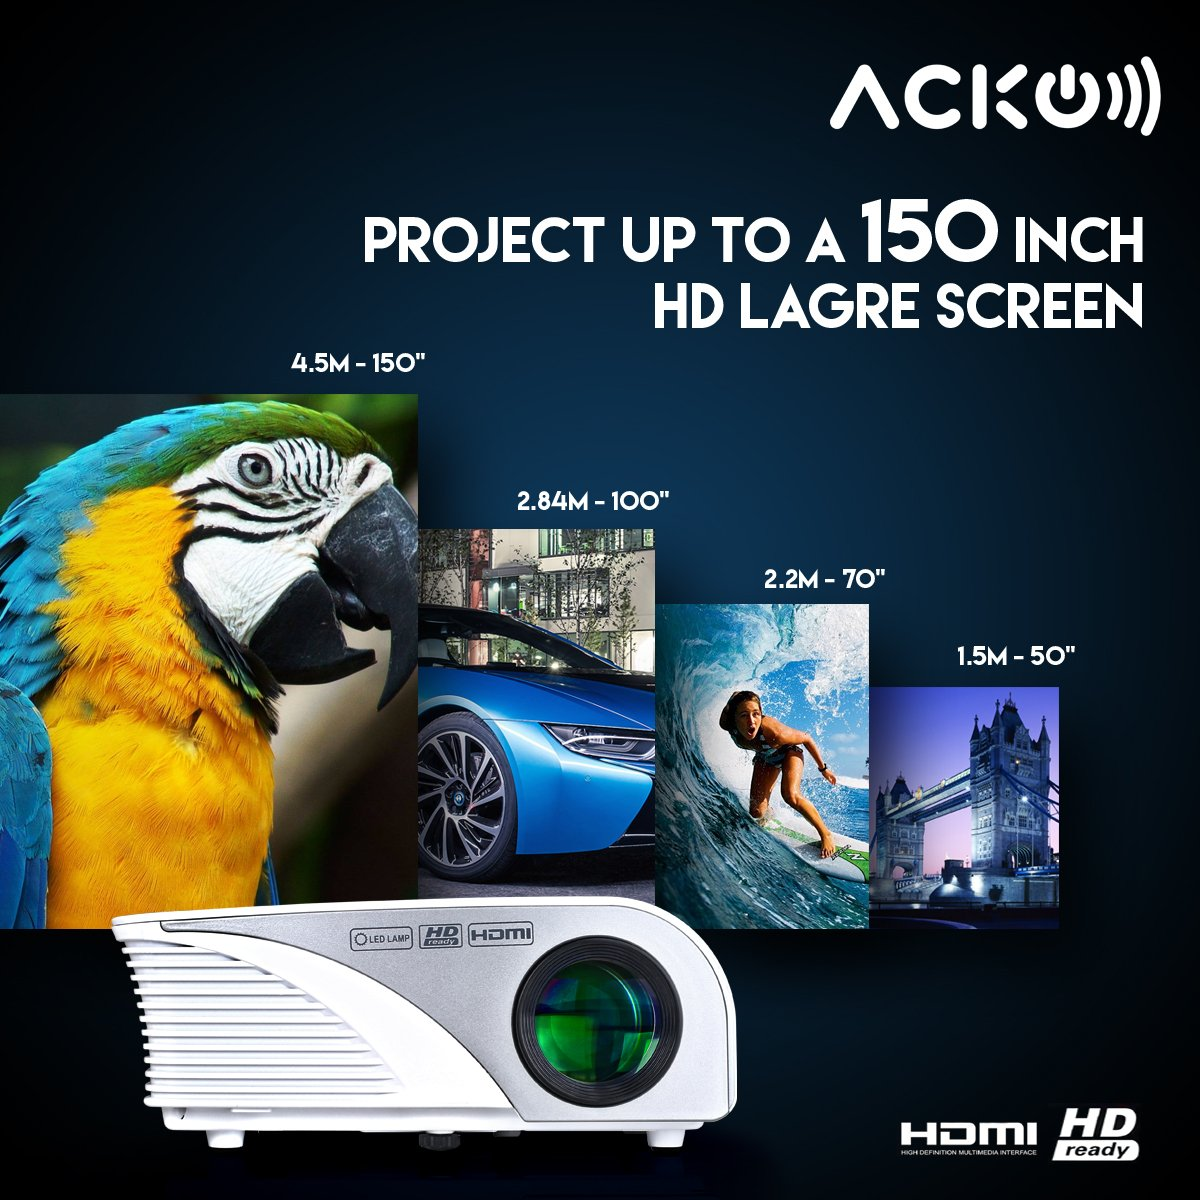 Acko Portable Mini HD LED Video Projector Office Home Theater 1200 LM Multimedia Outdoor 20''-150'' HDMI VGA USB AV SD Audio 1080P Smart Phone Tablet PC Computers Laptops White Warranty Included by EpandaHouse (Image #3)